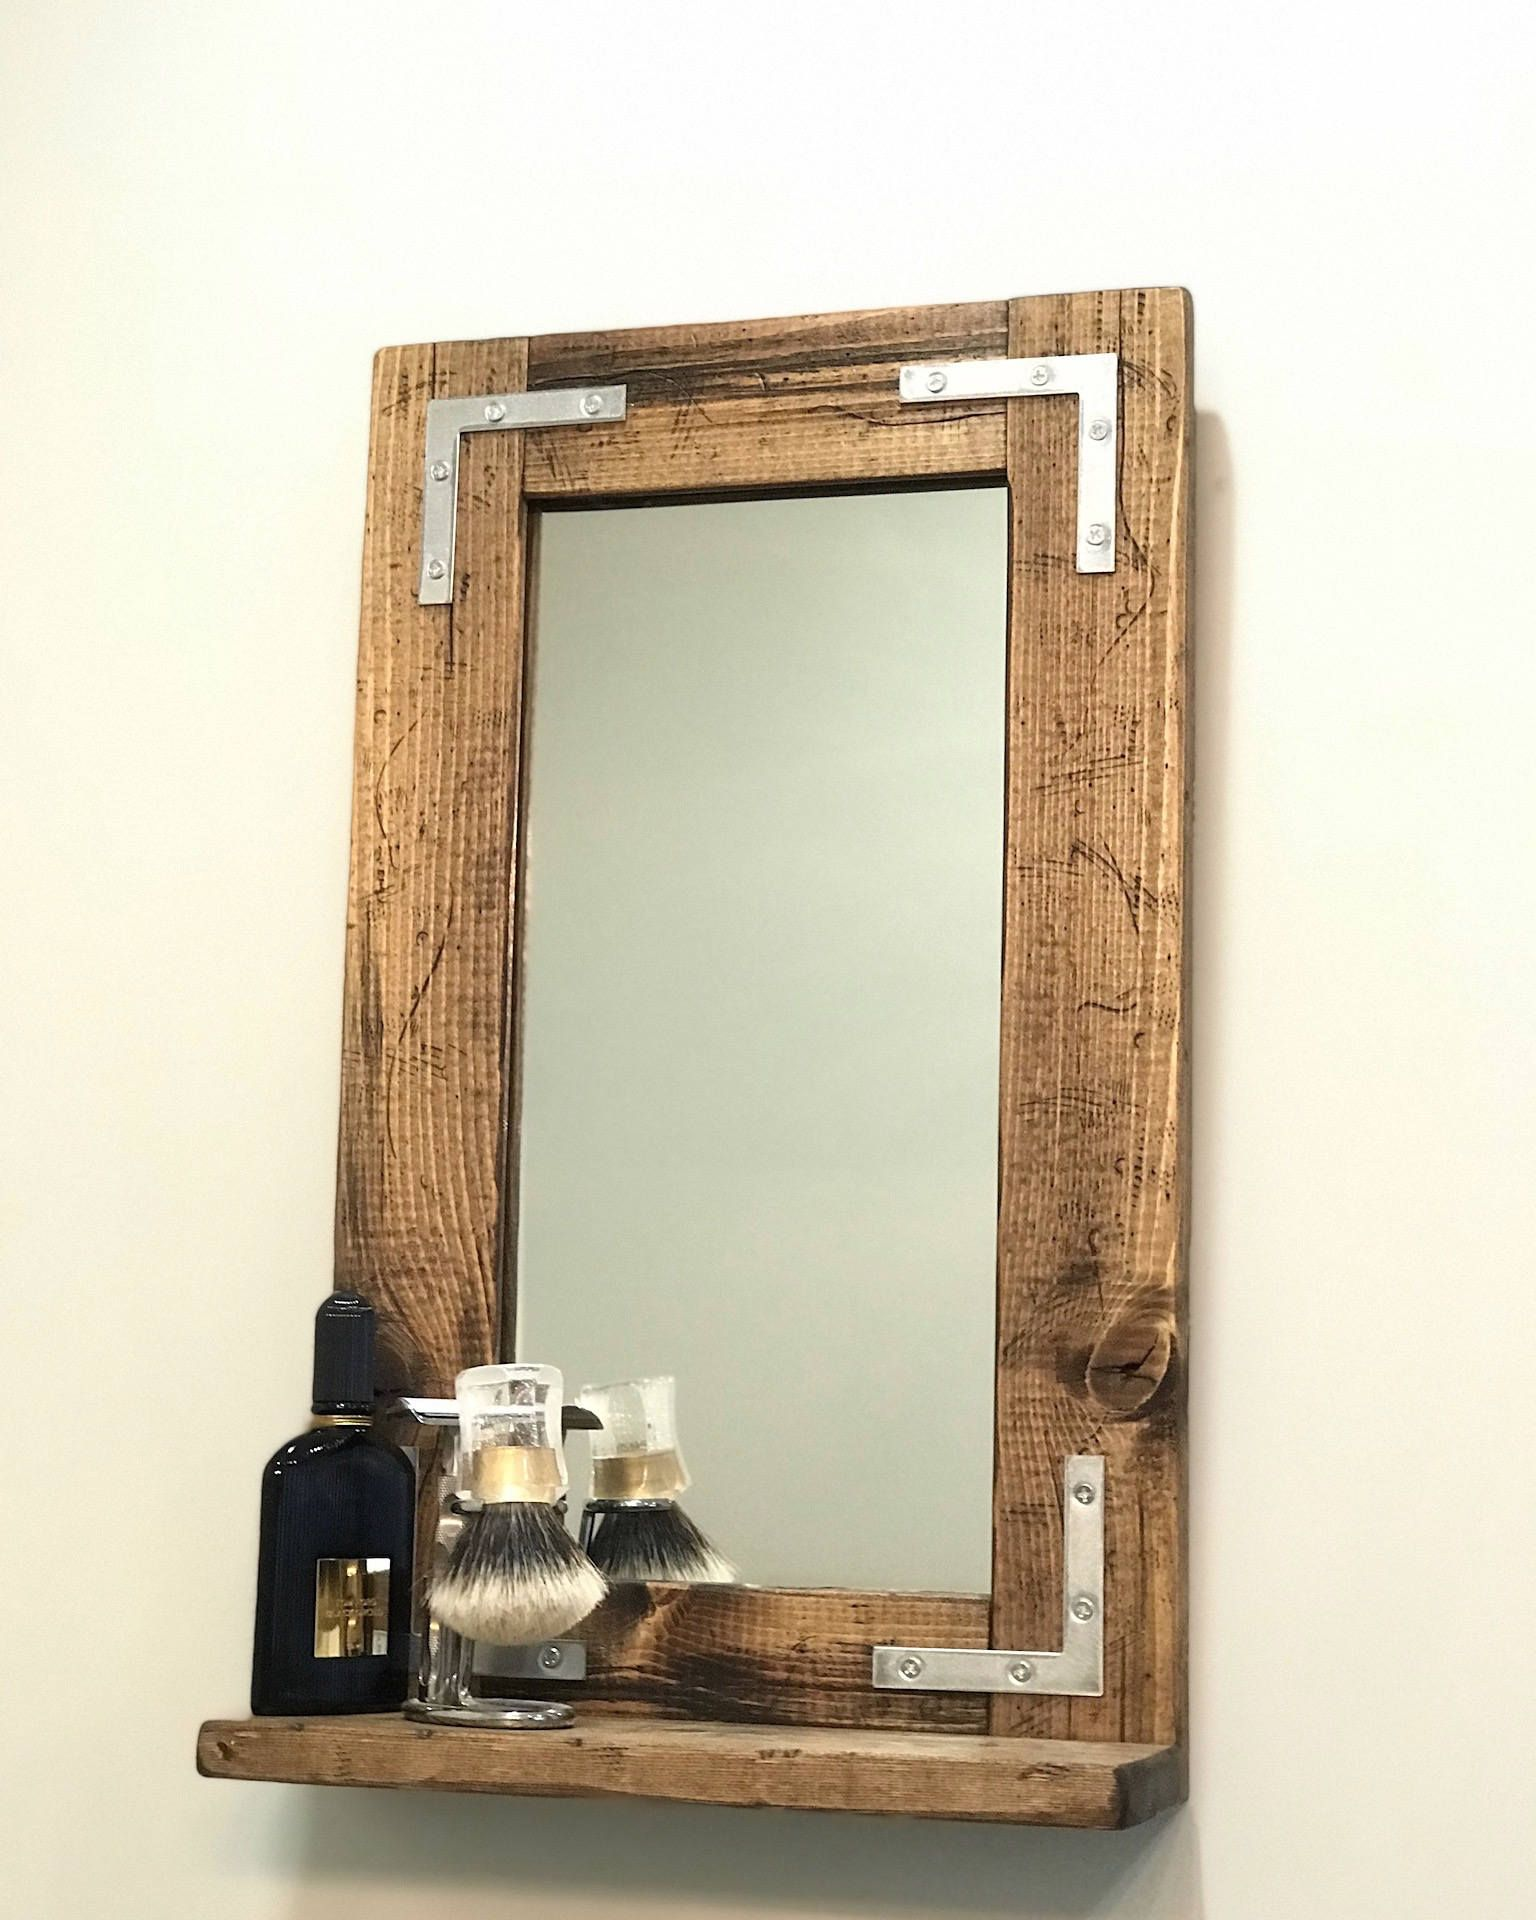 Rustic Distressed Mirror With Shelf Small Mirror Bathroom Etsy Rustic Mirrors Mirror With Shelf Bathroom Mirror With Shelf